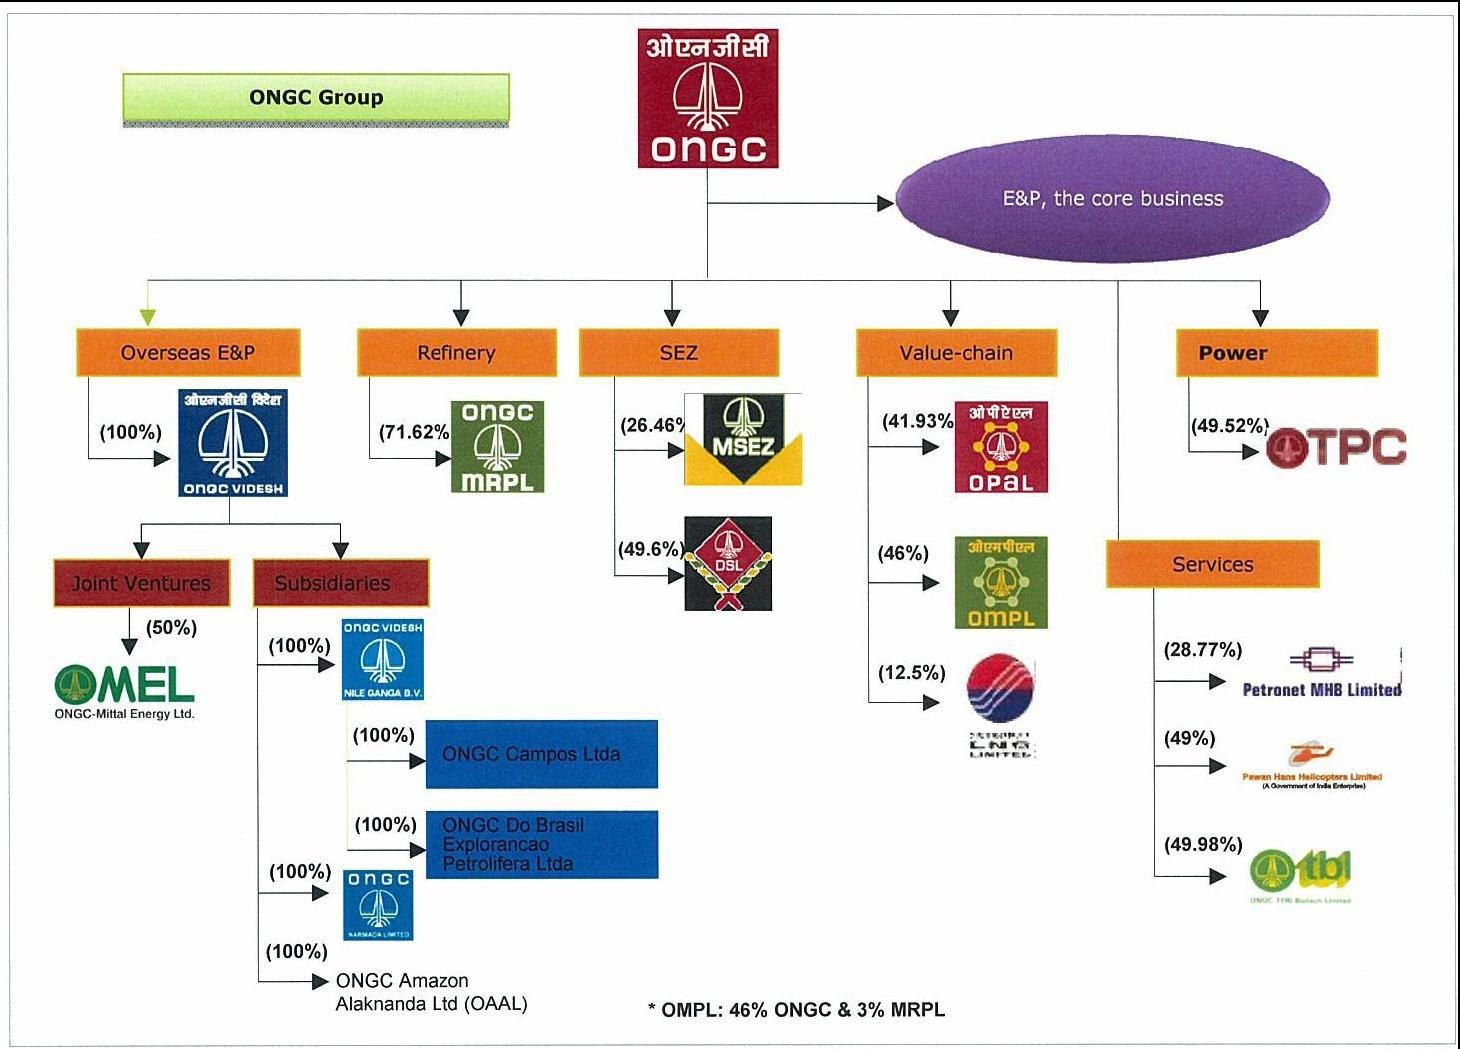 ongc group of companies